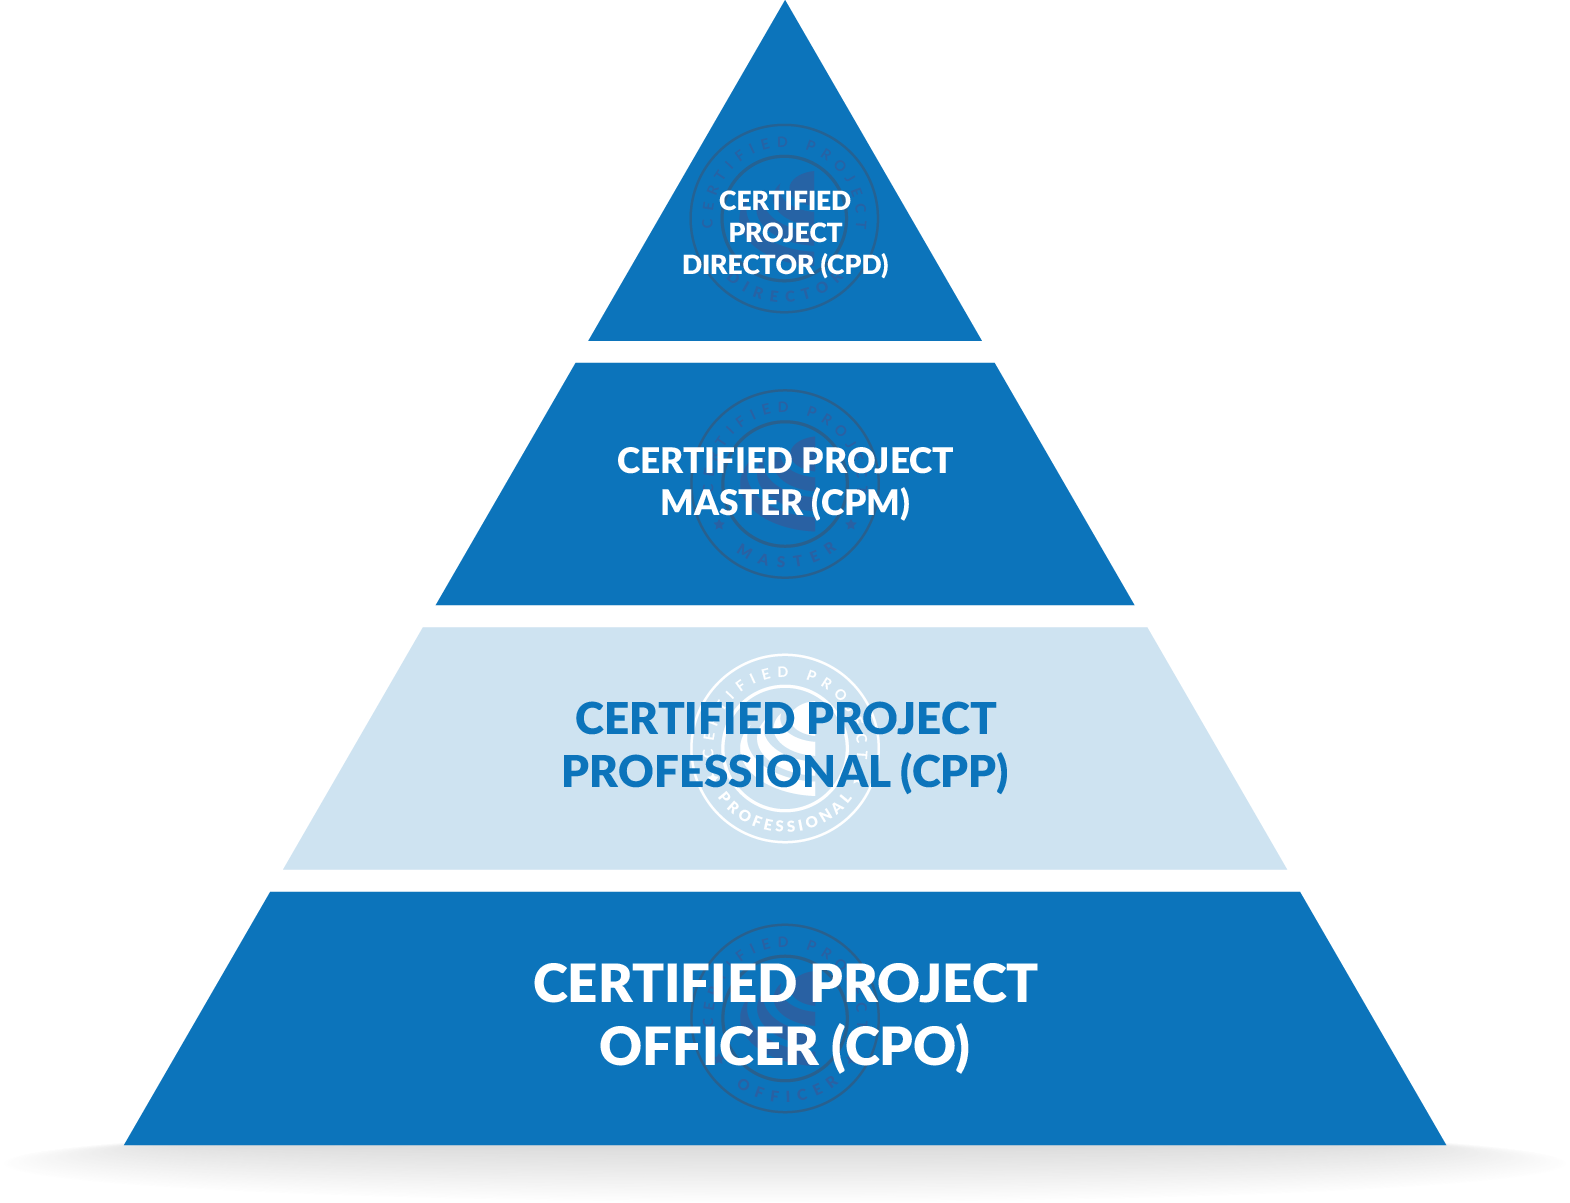 Certified project professional cpp institute of project management institute of project management credentials validate contemporary best practices in the discipline of project management by not slavishly adhereing to or xflitez Image collections